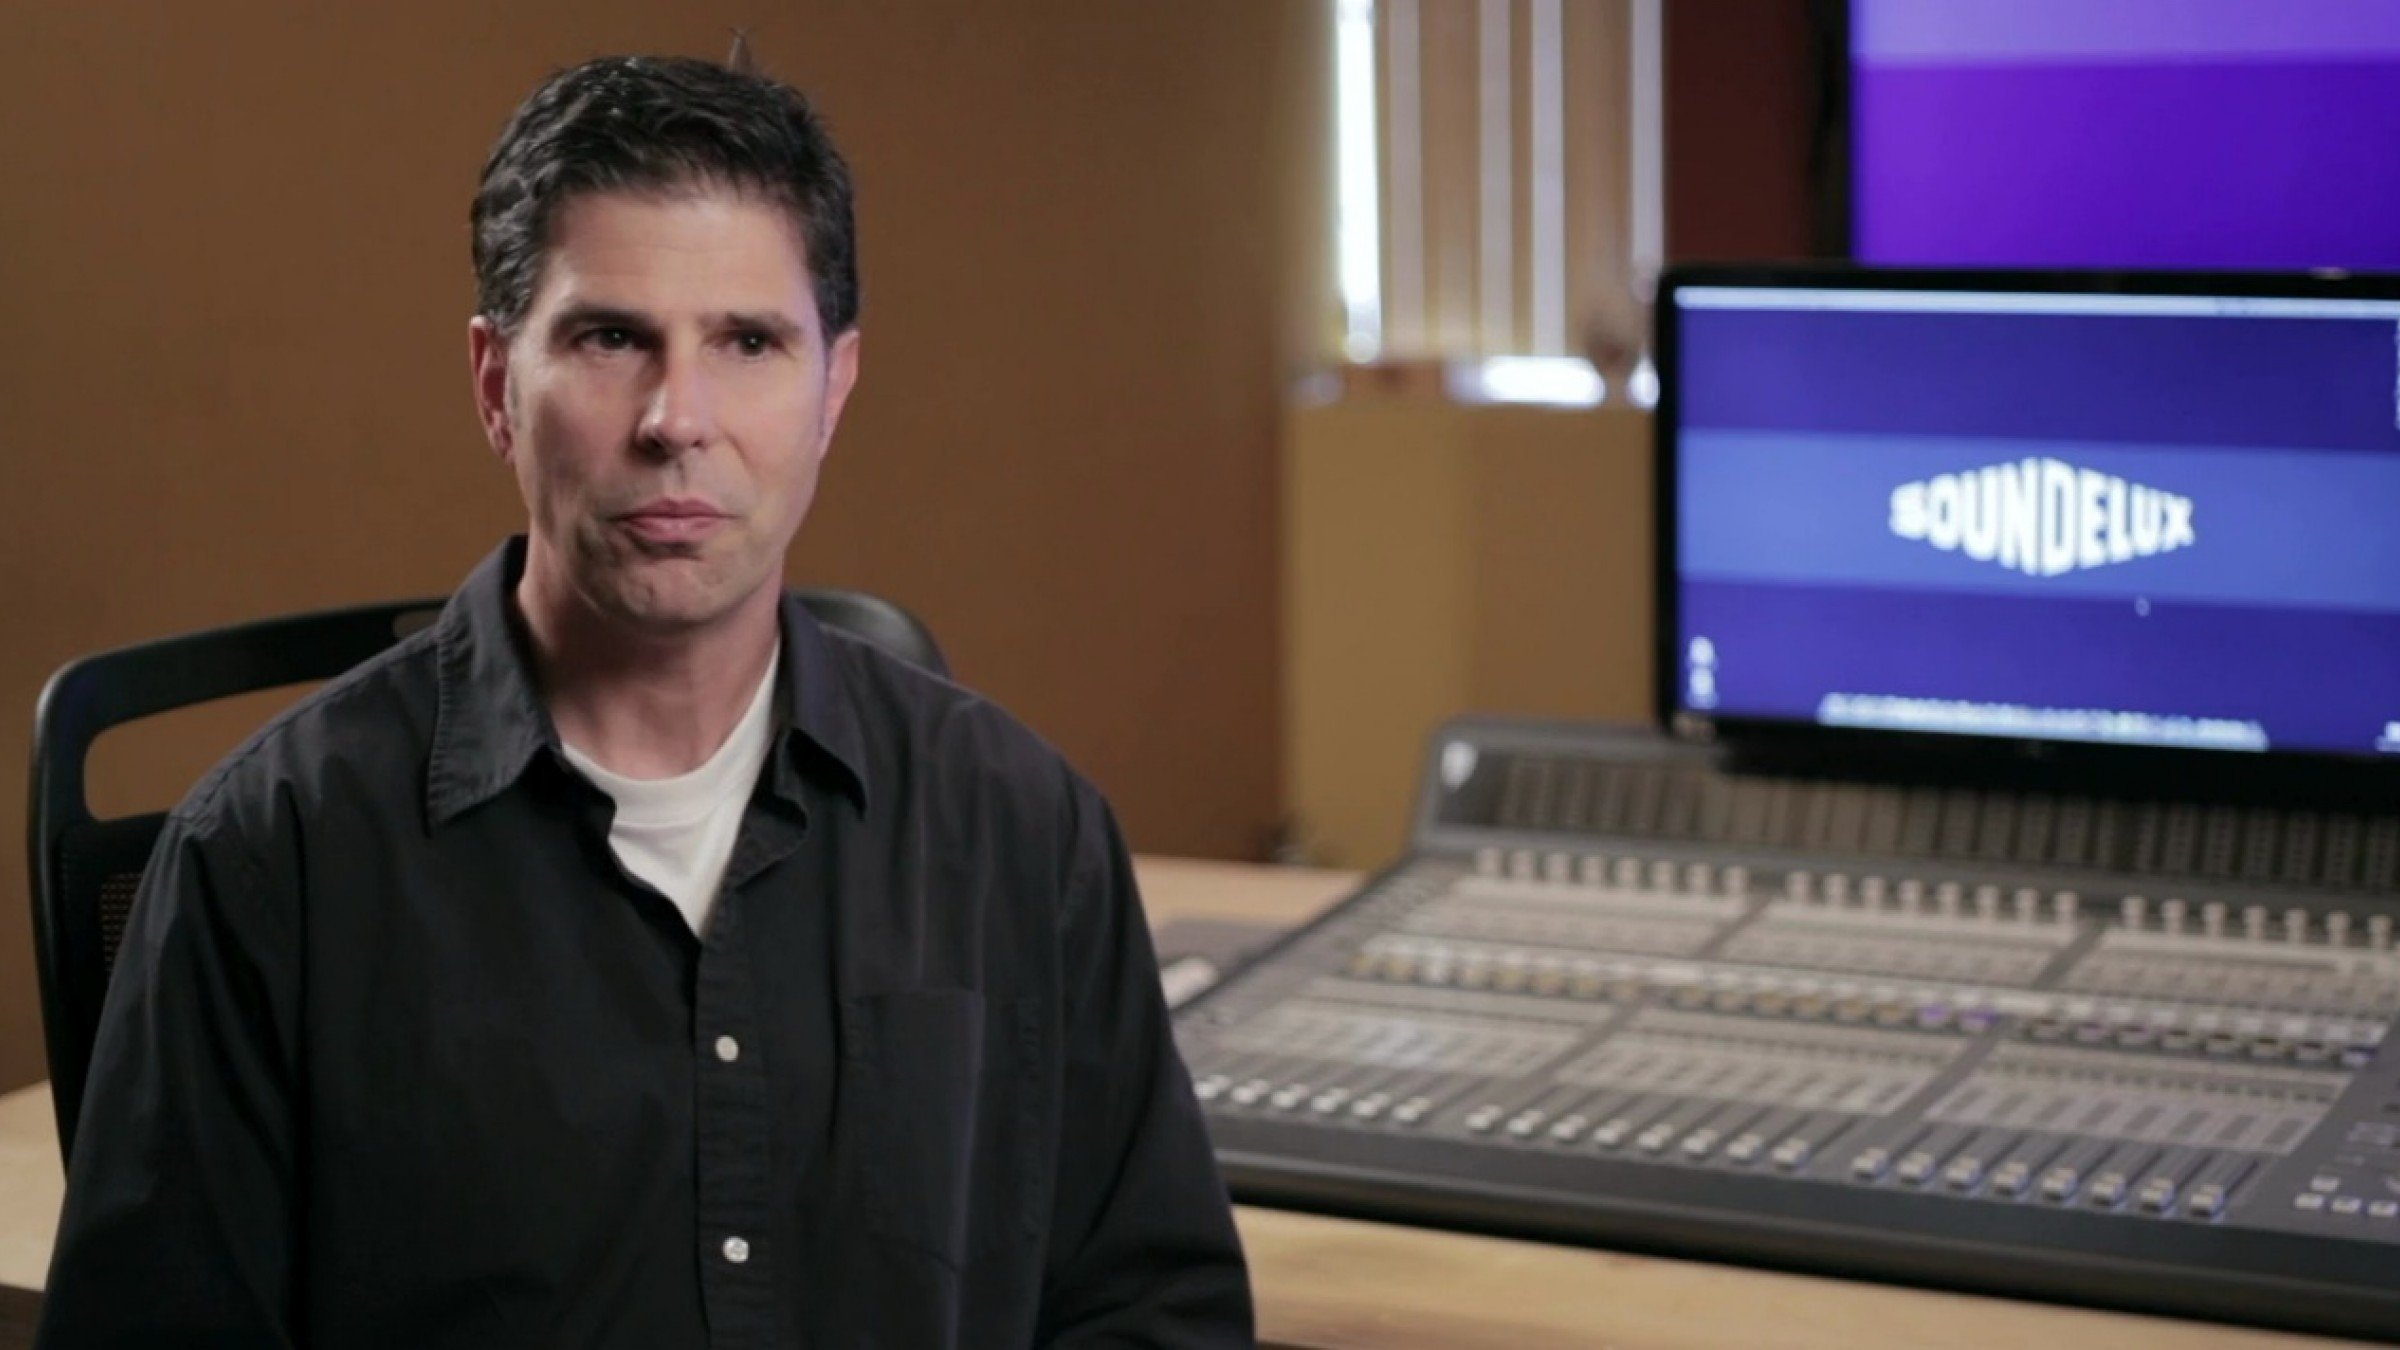 Learn Sound Design Tips from the Experts with This